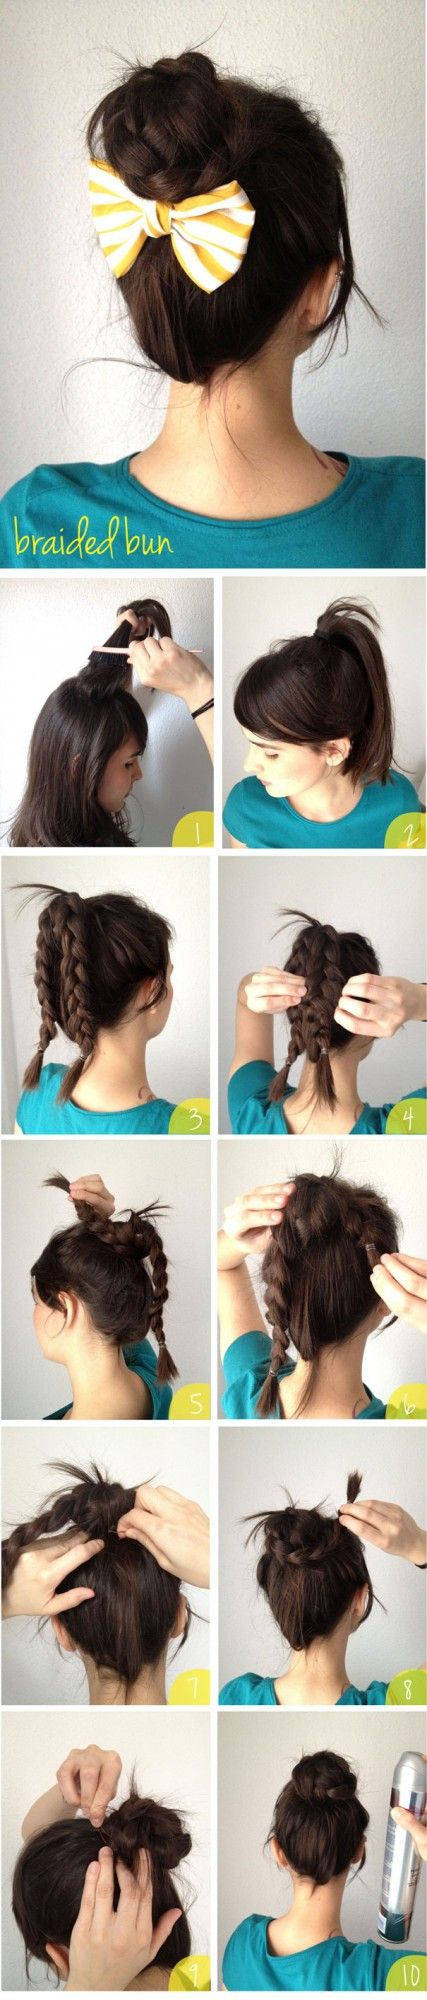 Fast hairstyle